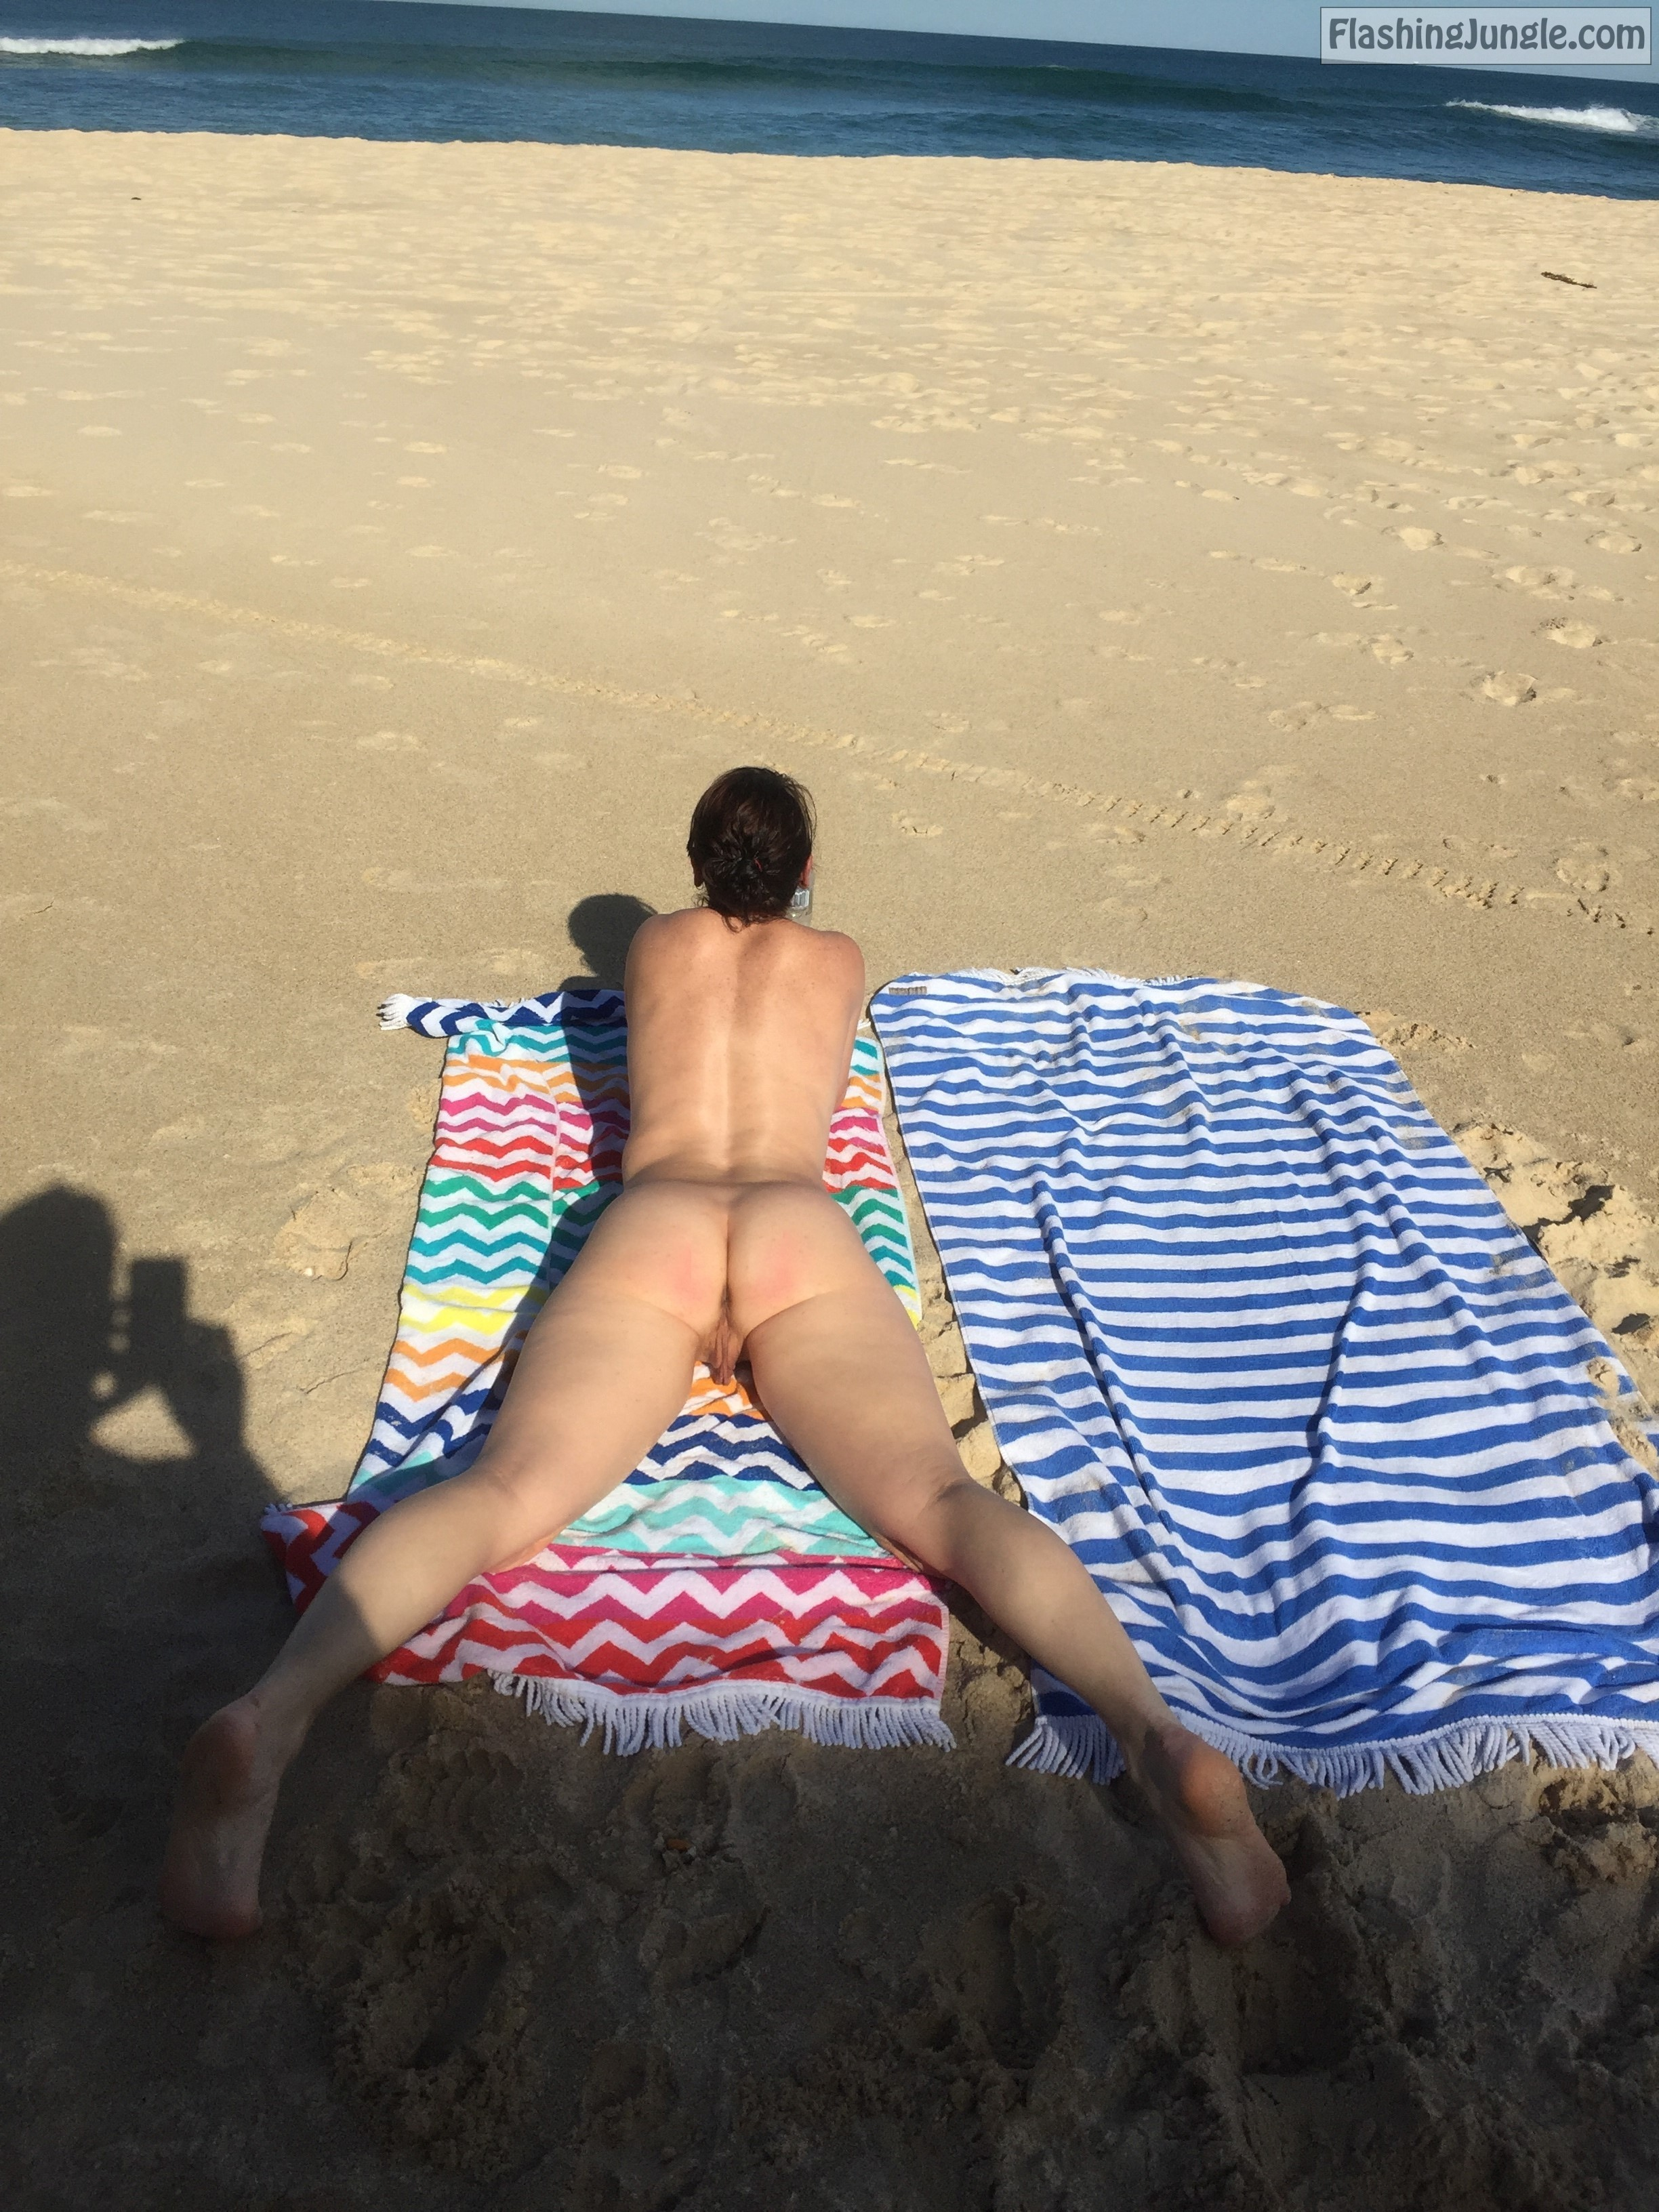 Sharing nude wife on public beach real nudity public nudity milf pics howife